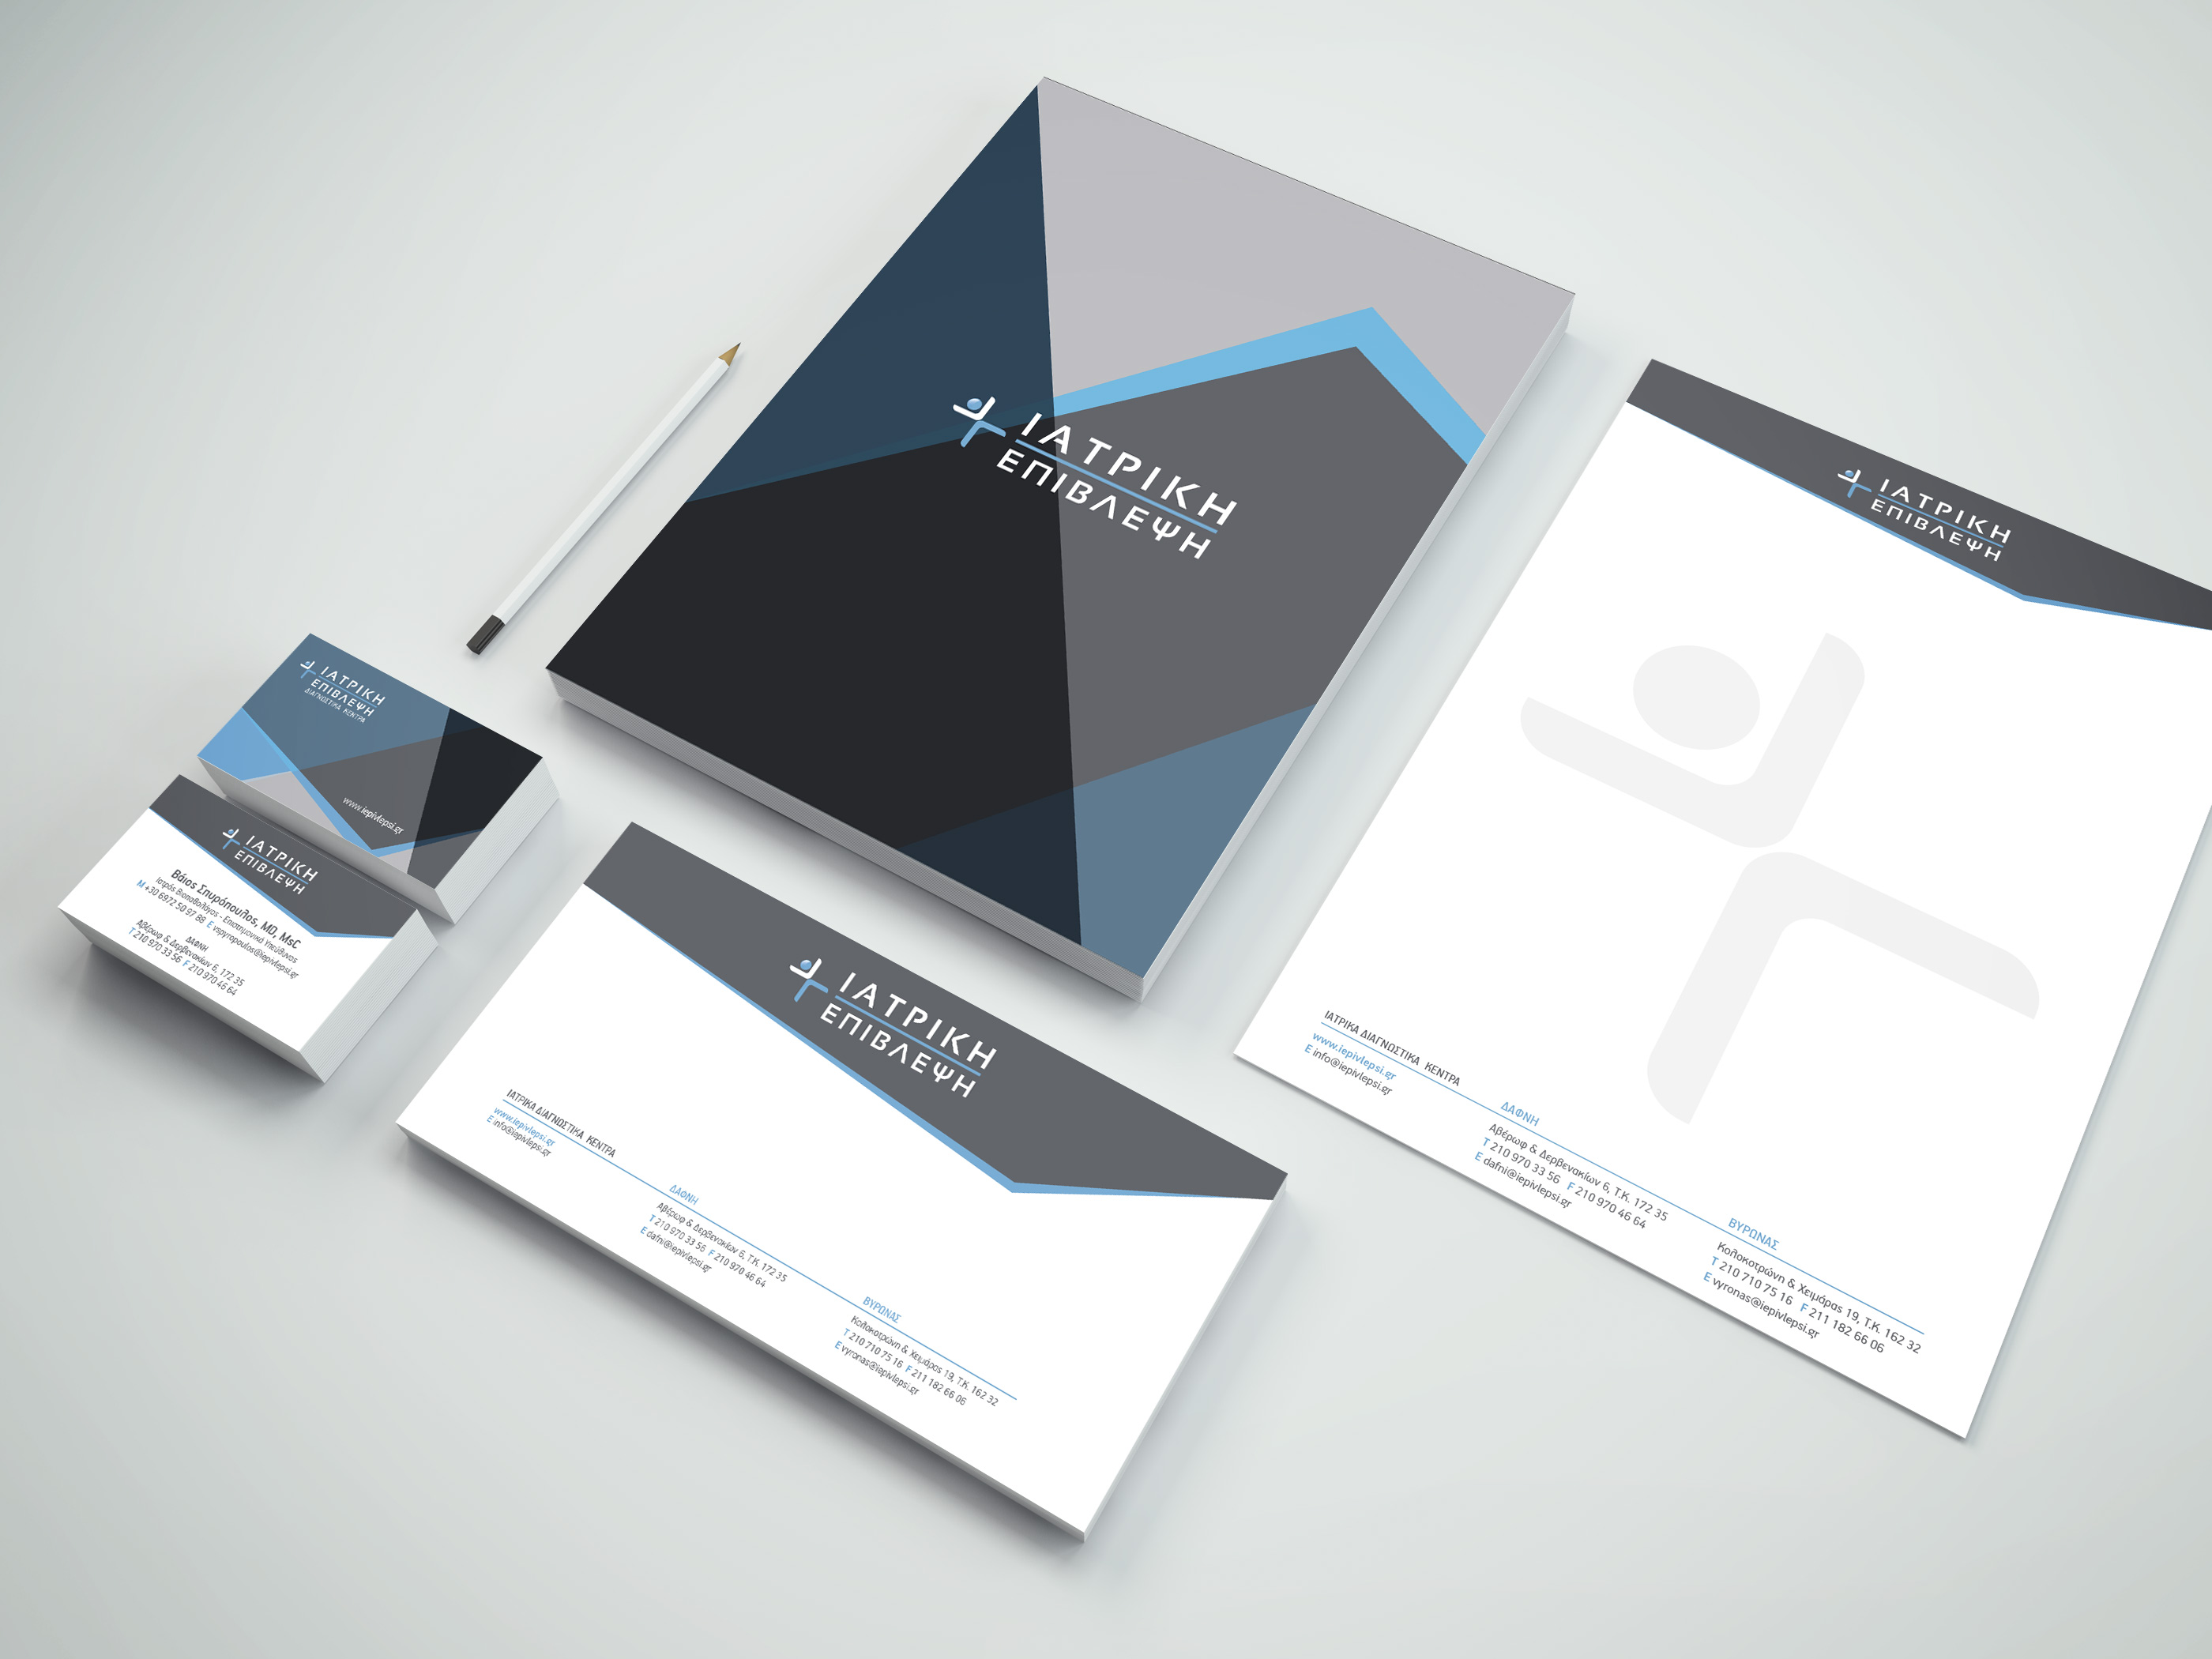 Iatriki Stationary Mockup